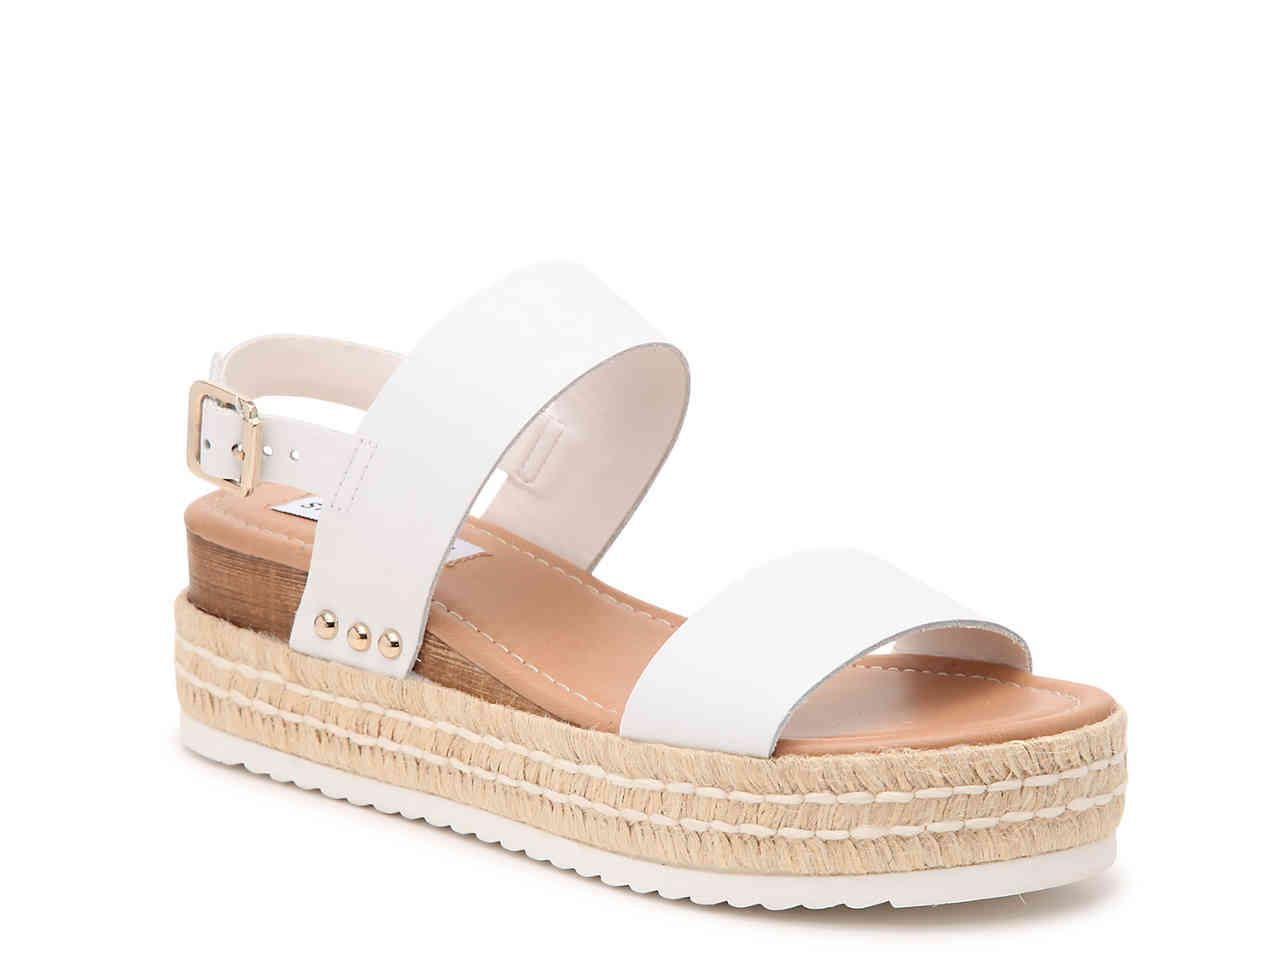 d319a19fdb Steve Madden Catia Espadrille Wedge Sandal in White - Lyst